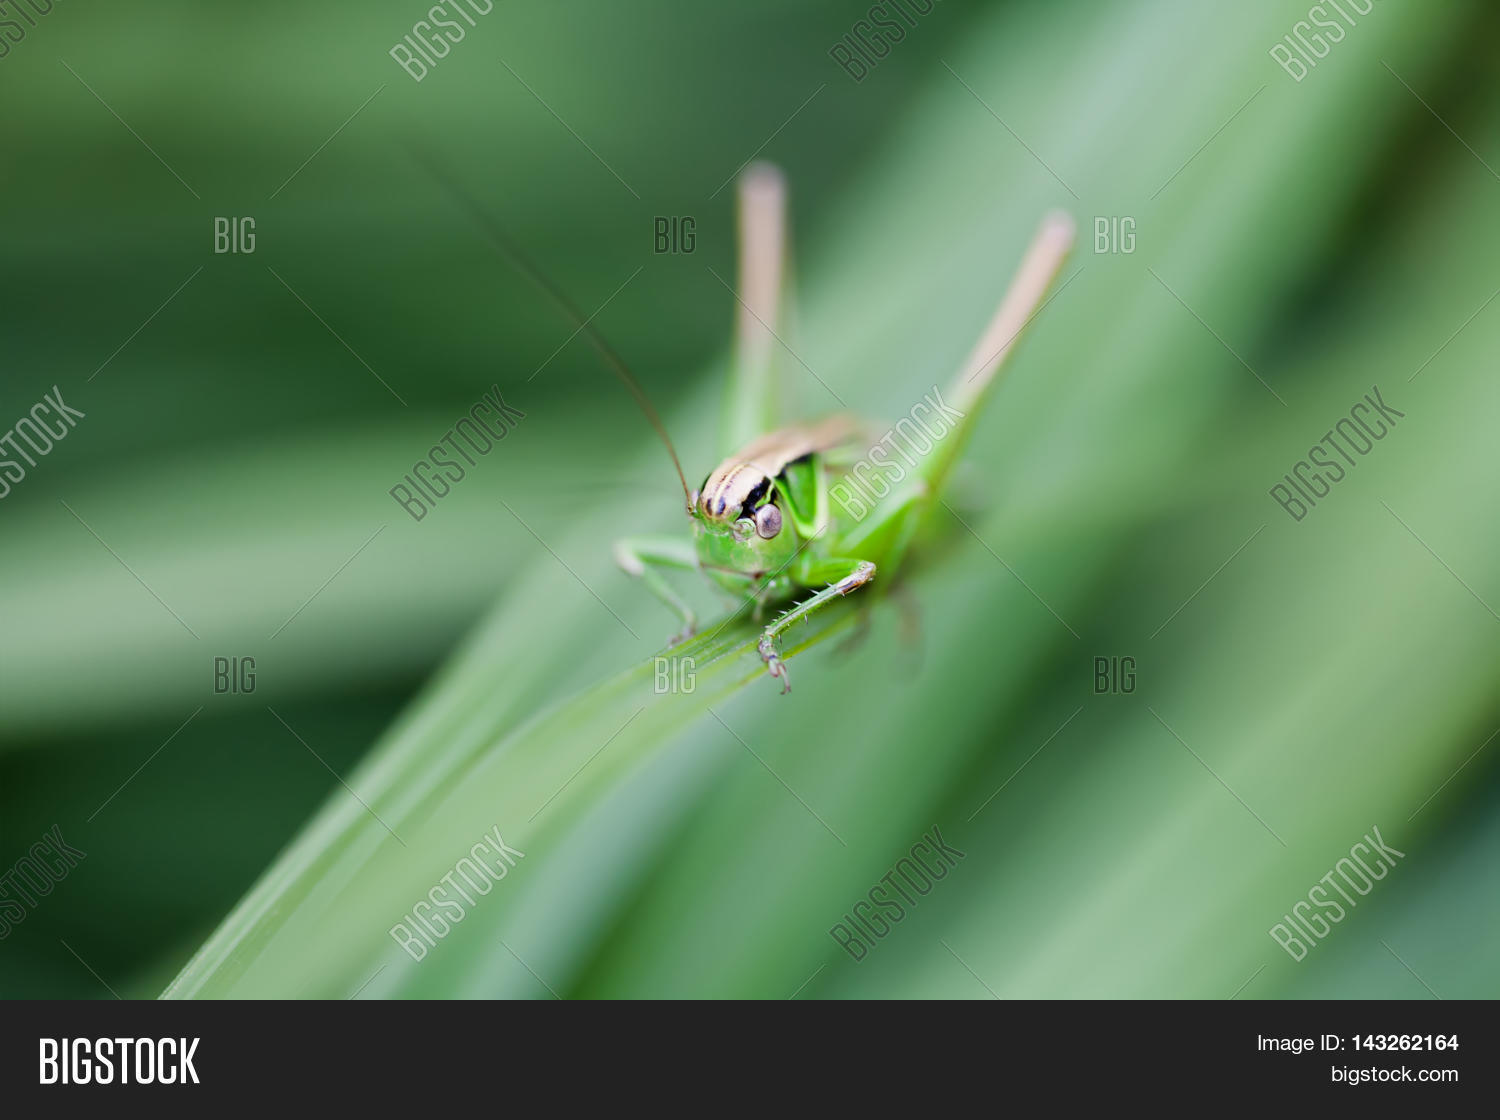 Selective Focus Image Photo Free Trial Bigstock Use In Macro Photography For Dummies Grasshopper Great Green Bush Cricket Tettigonia Viridissima Insect View